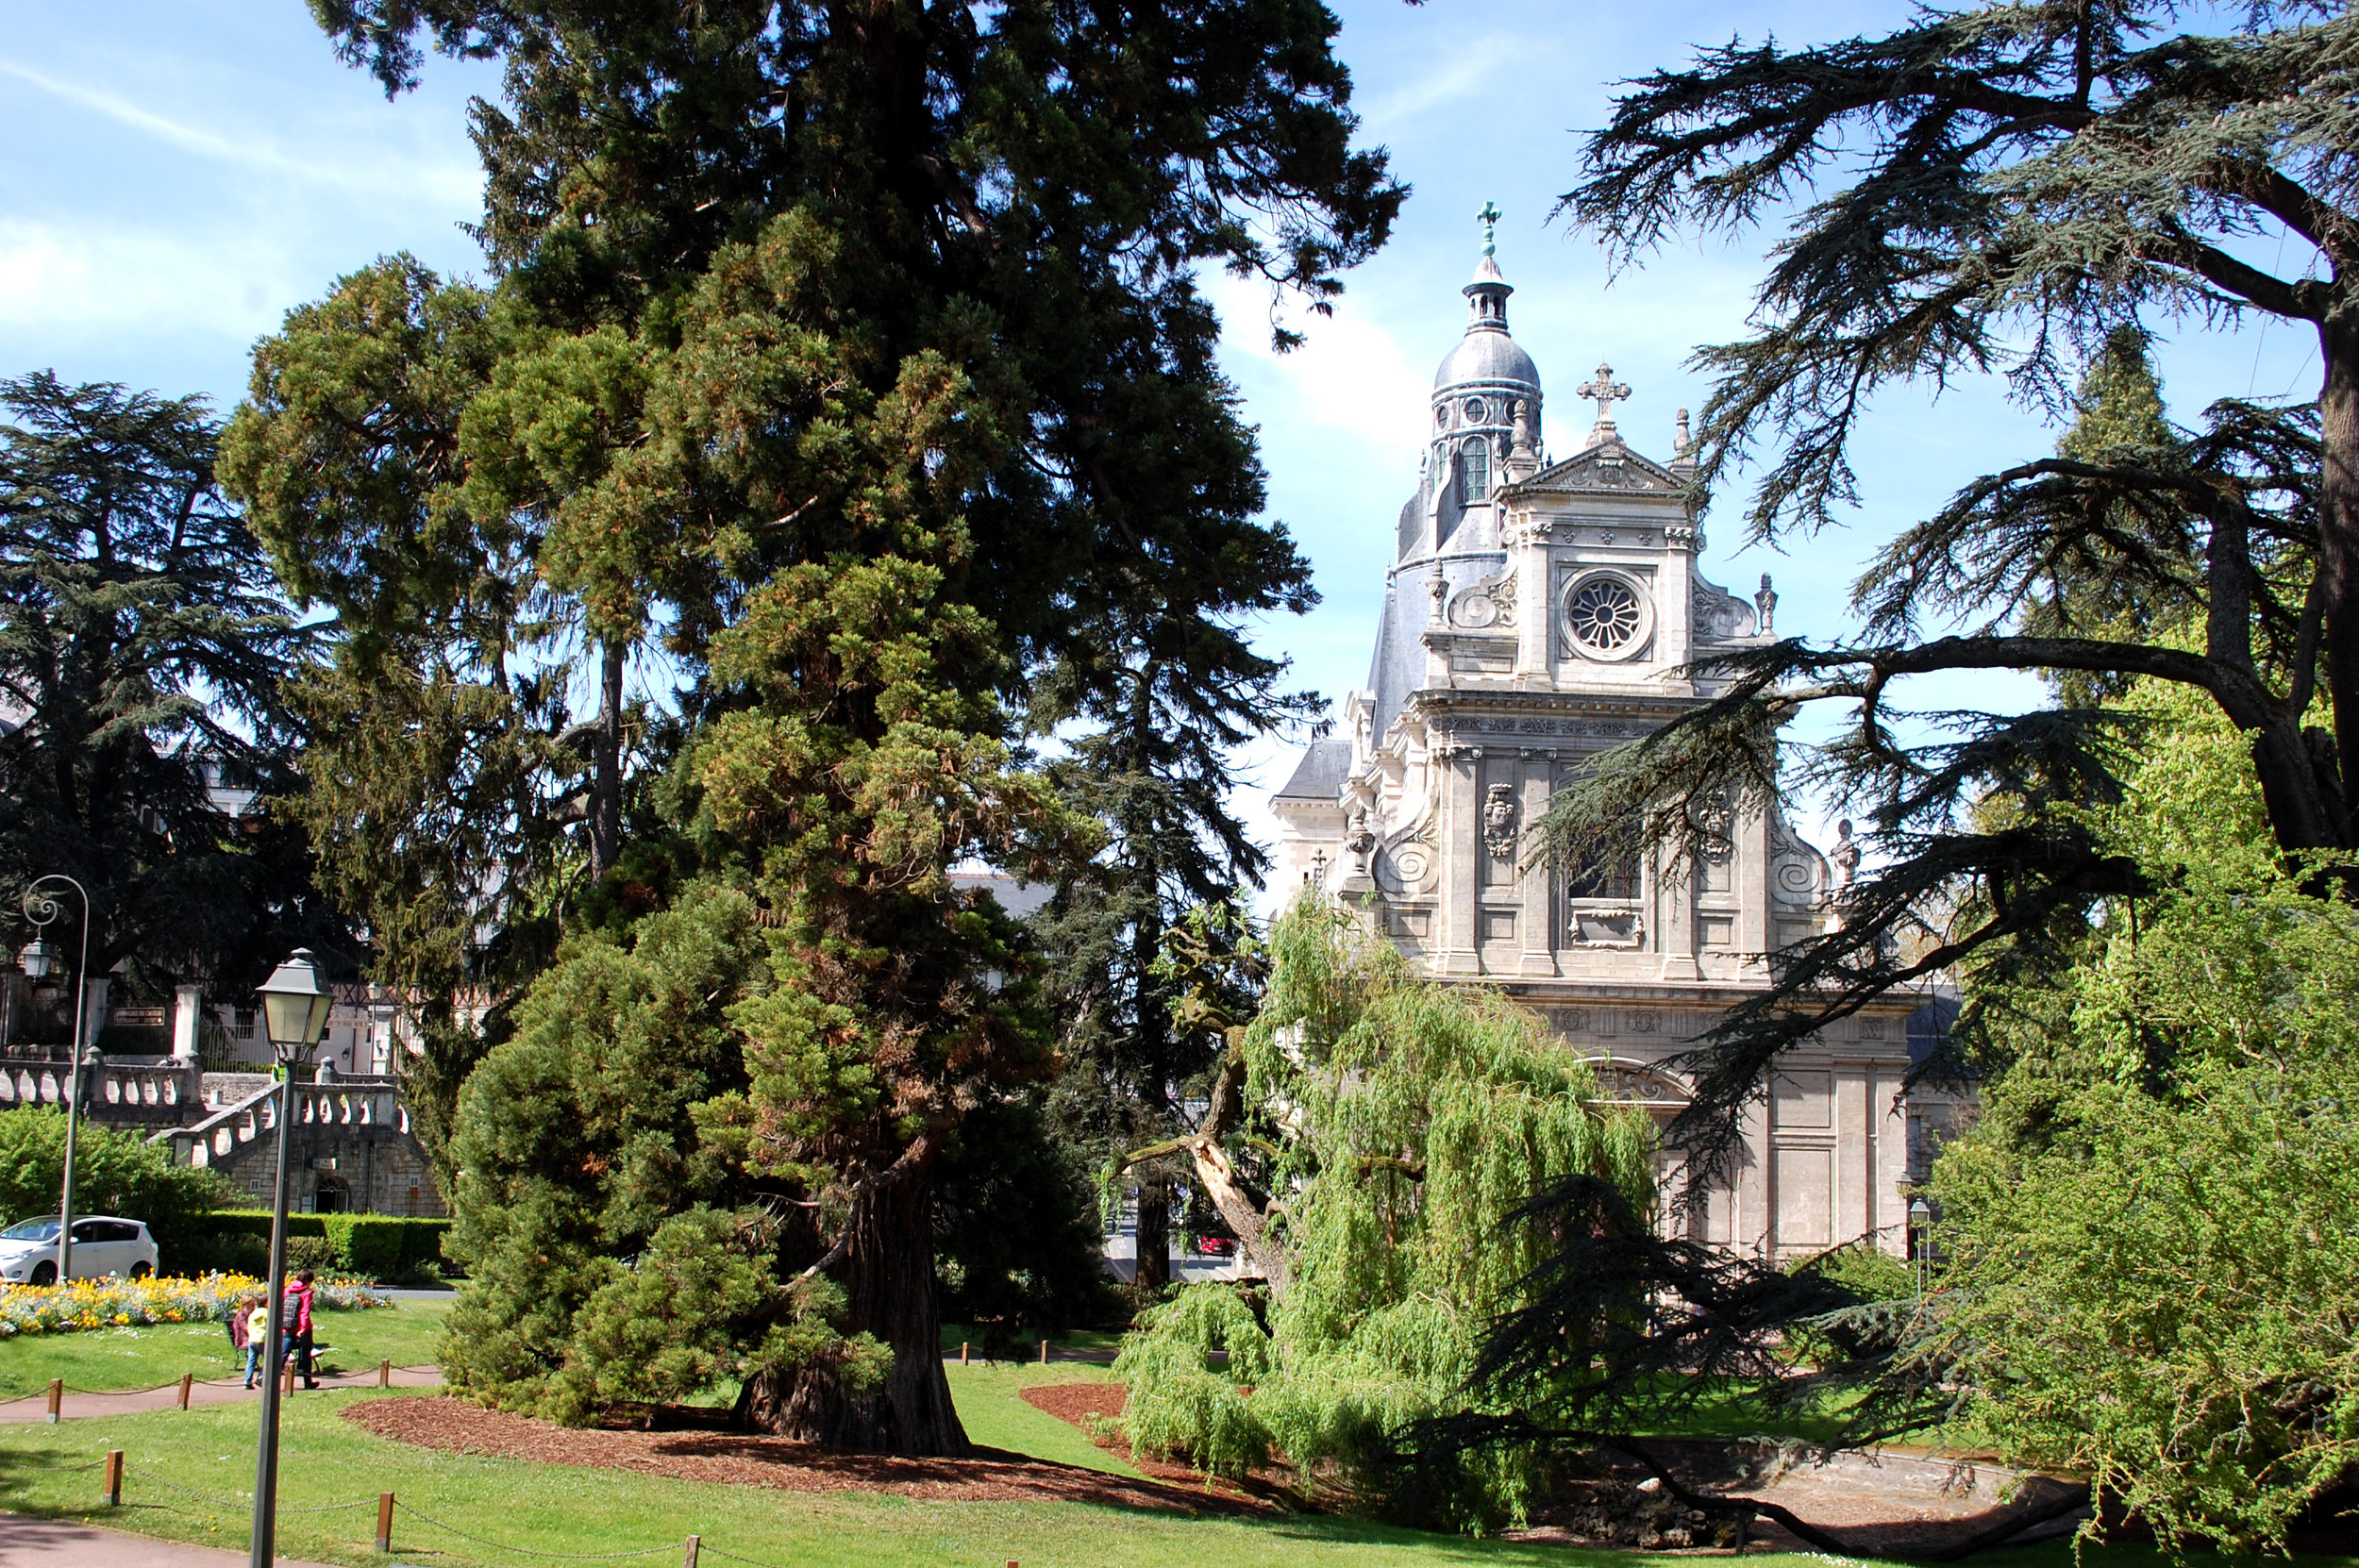 Blois park and church